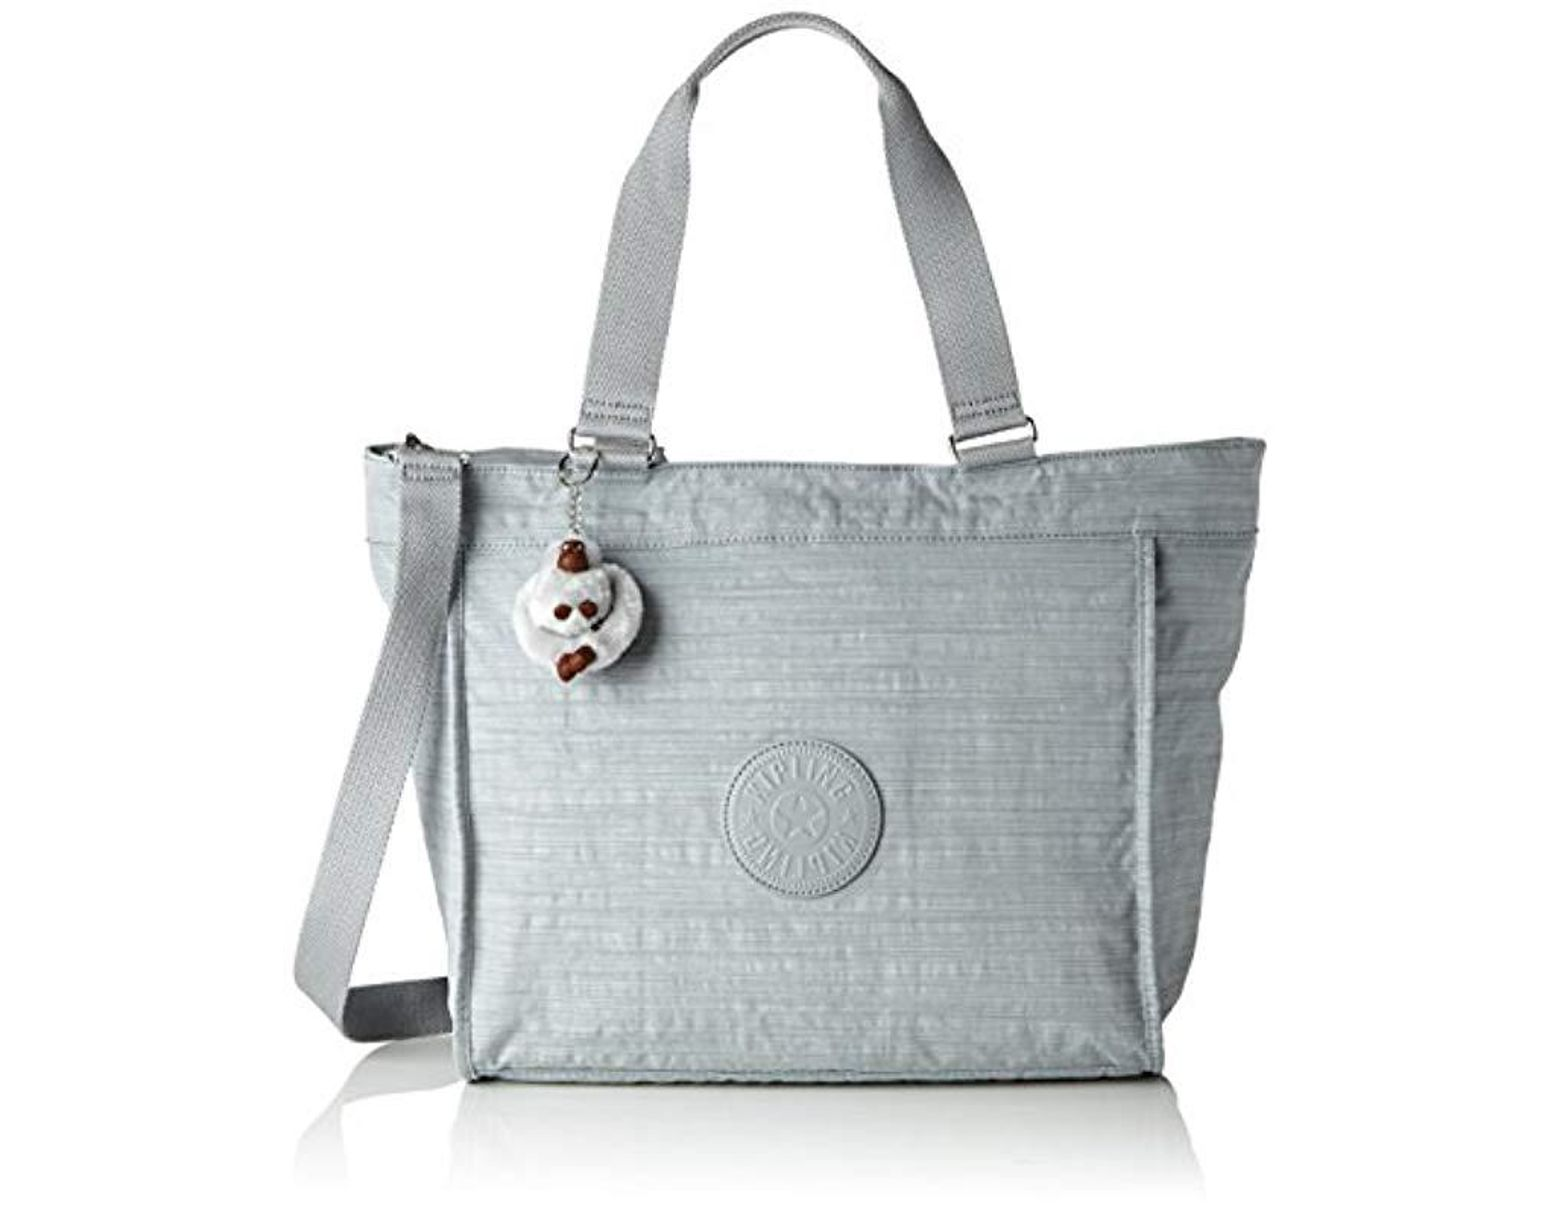 New Shopper FemmeMulticolore Coloris De Gris ZwPuiOTkX